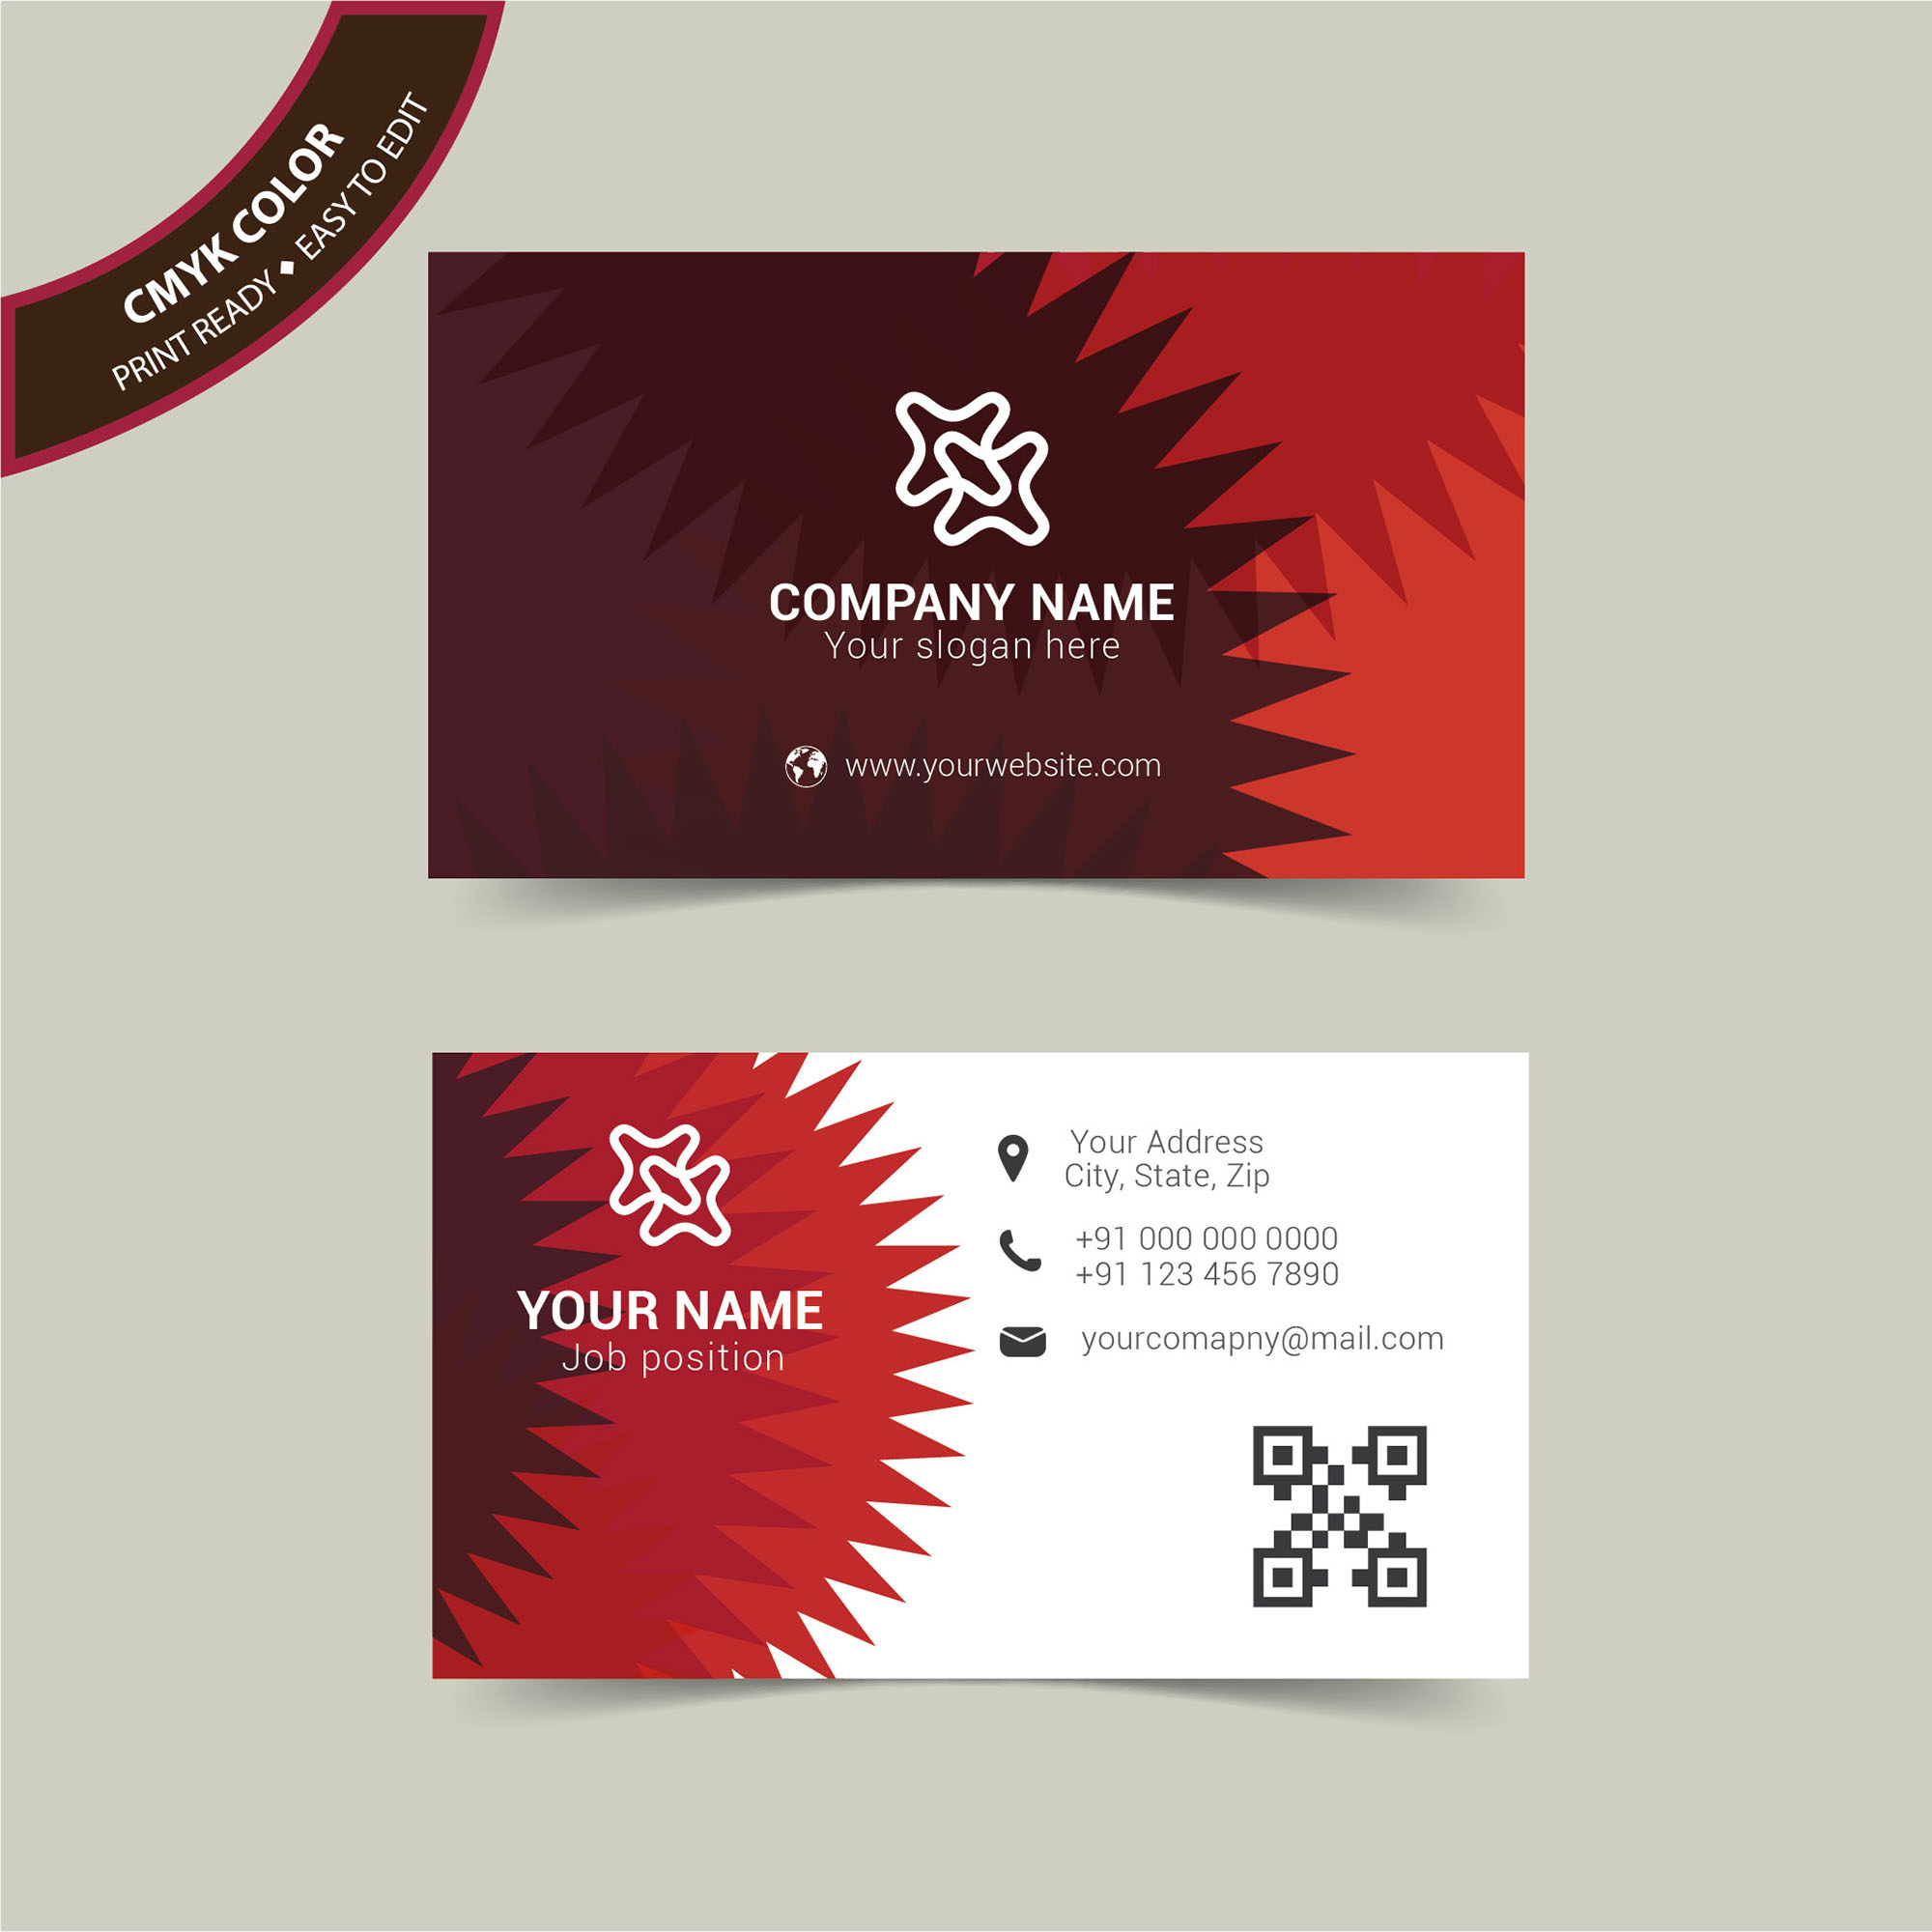 Abstract professional business card free download wisxi business card business cards business card design business card template design templates reheart Gallery